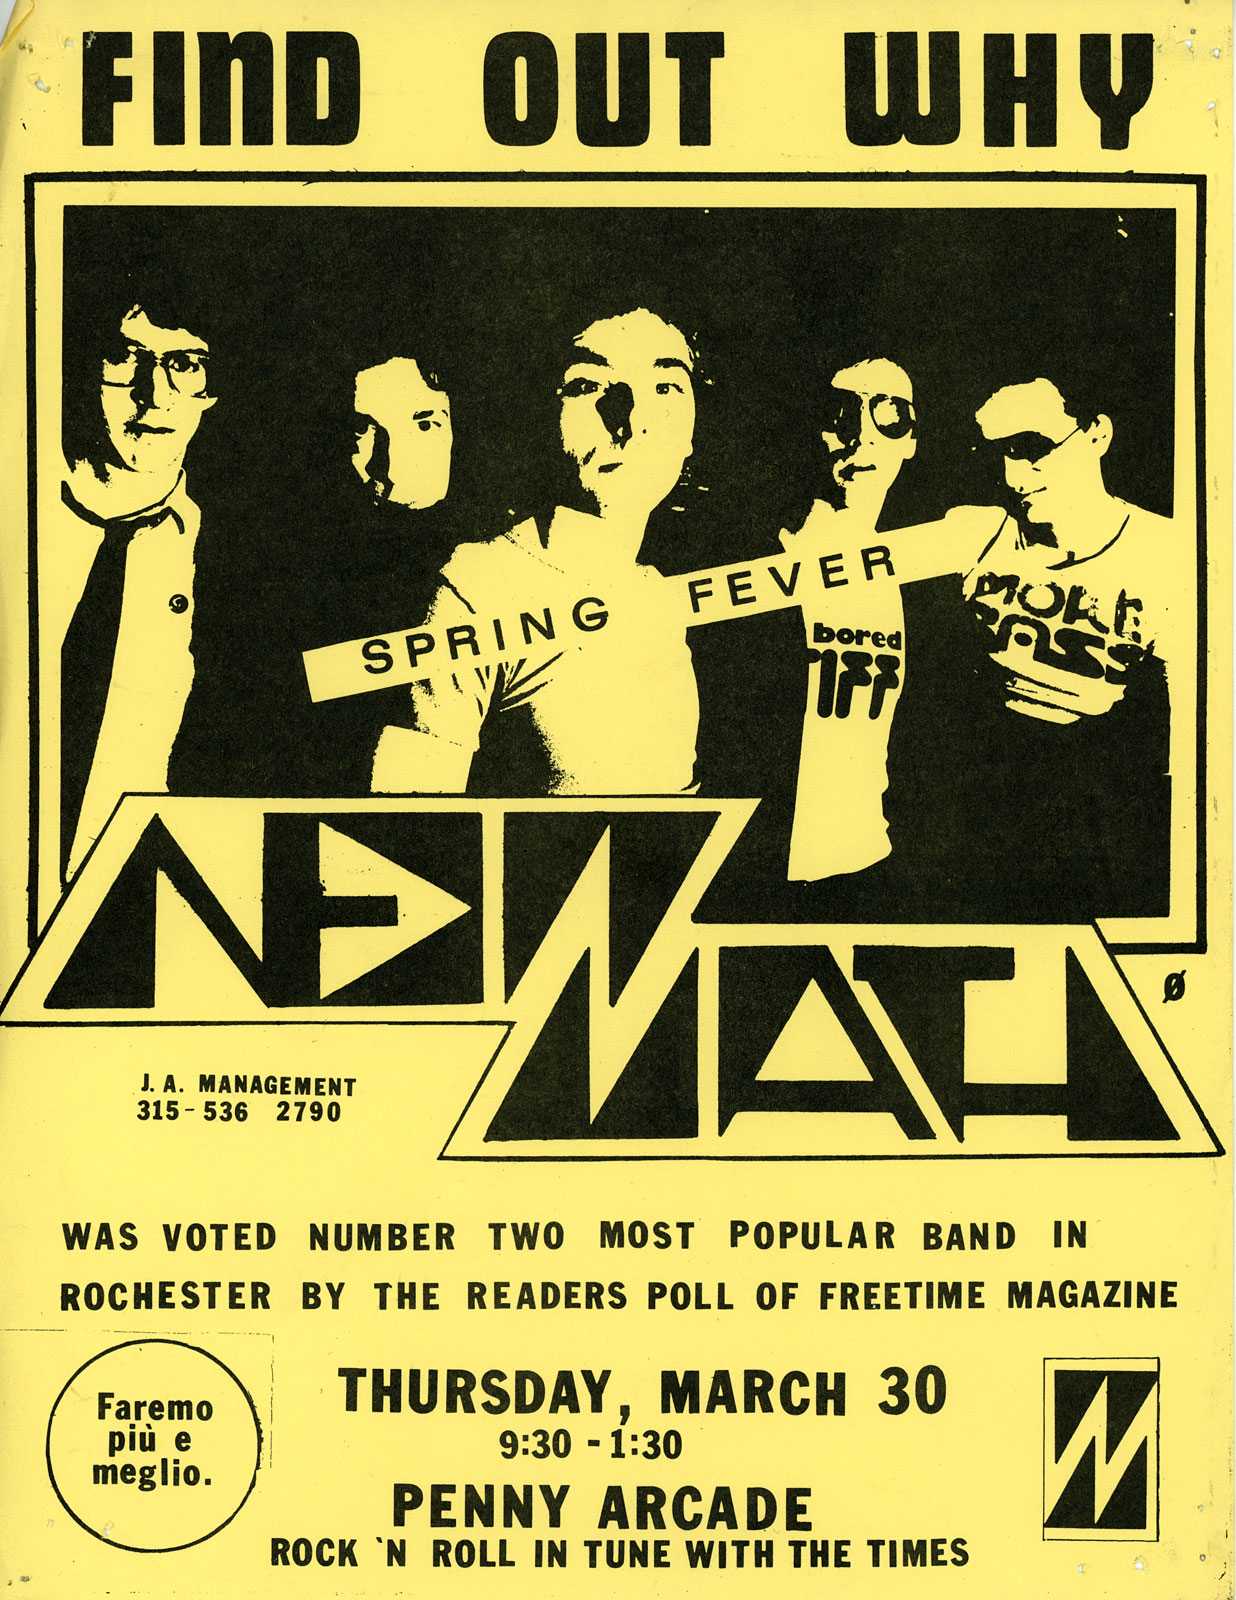 New Math poster for Penny Arcade performance 03.30.1978